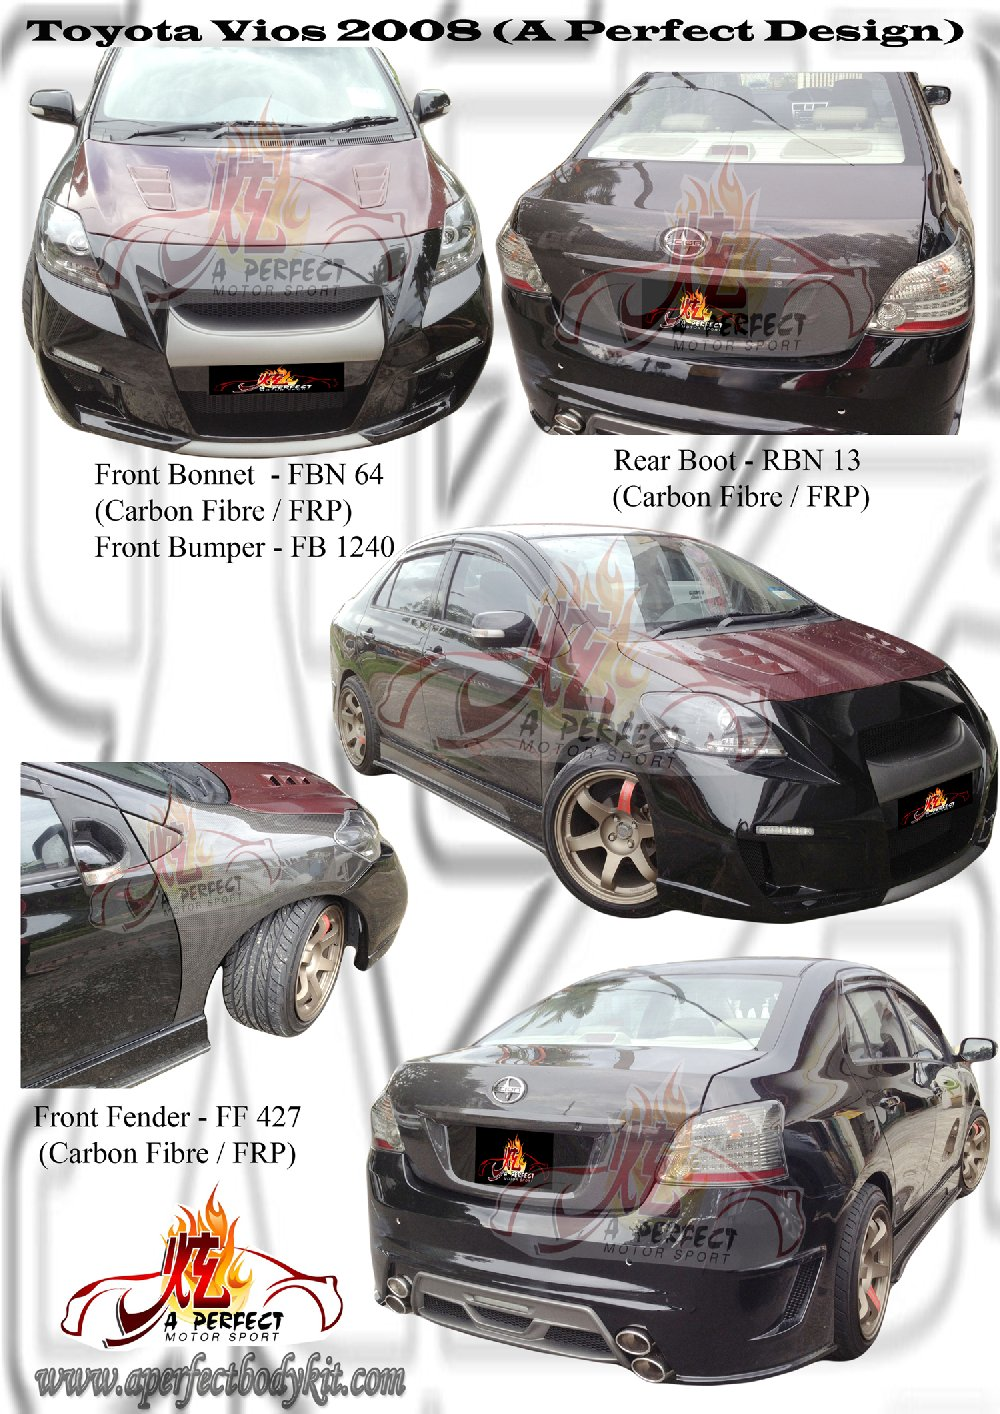 Toyota Vios 2008 A Perfect Design Custom Body Kits Toyota